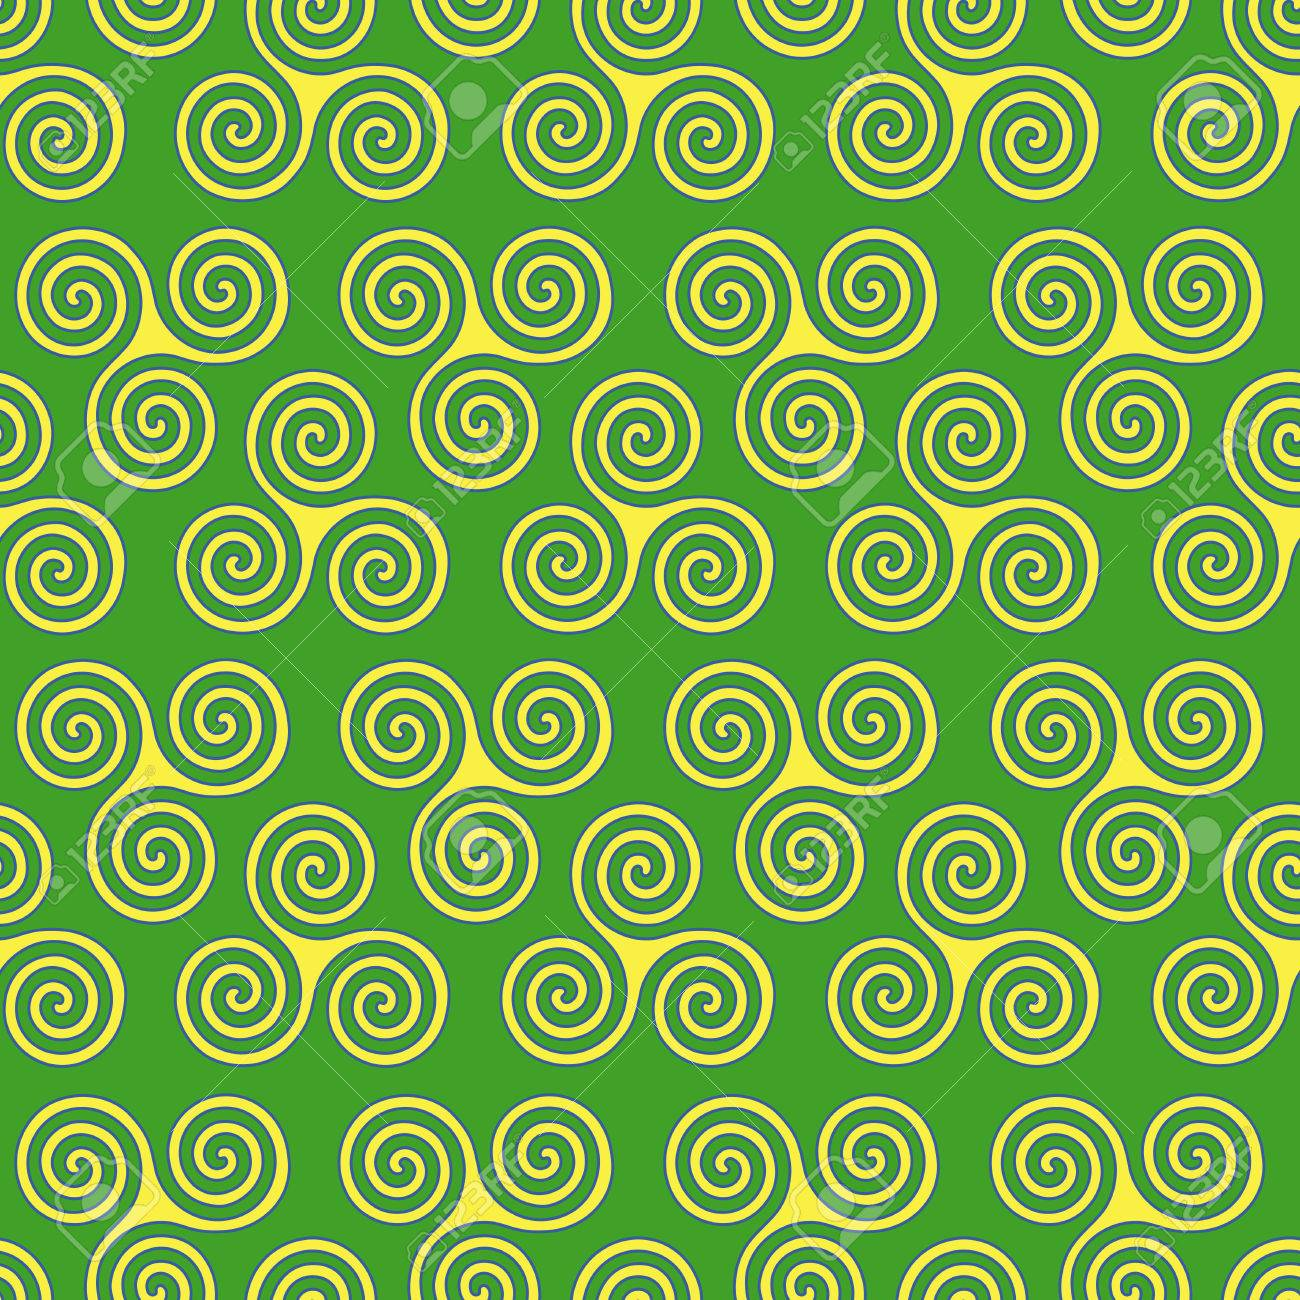 Seamless vector pattern with swirling triple spiral or triskele seamless vector pattern with swirling triple spiral or triskele a complex ancient celtic symbol buycottarizona Images